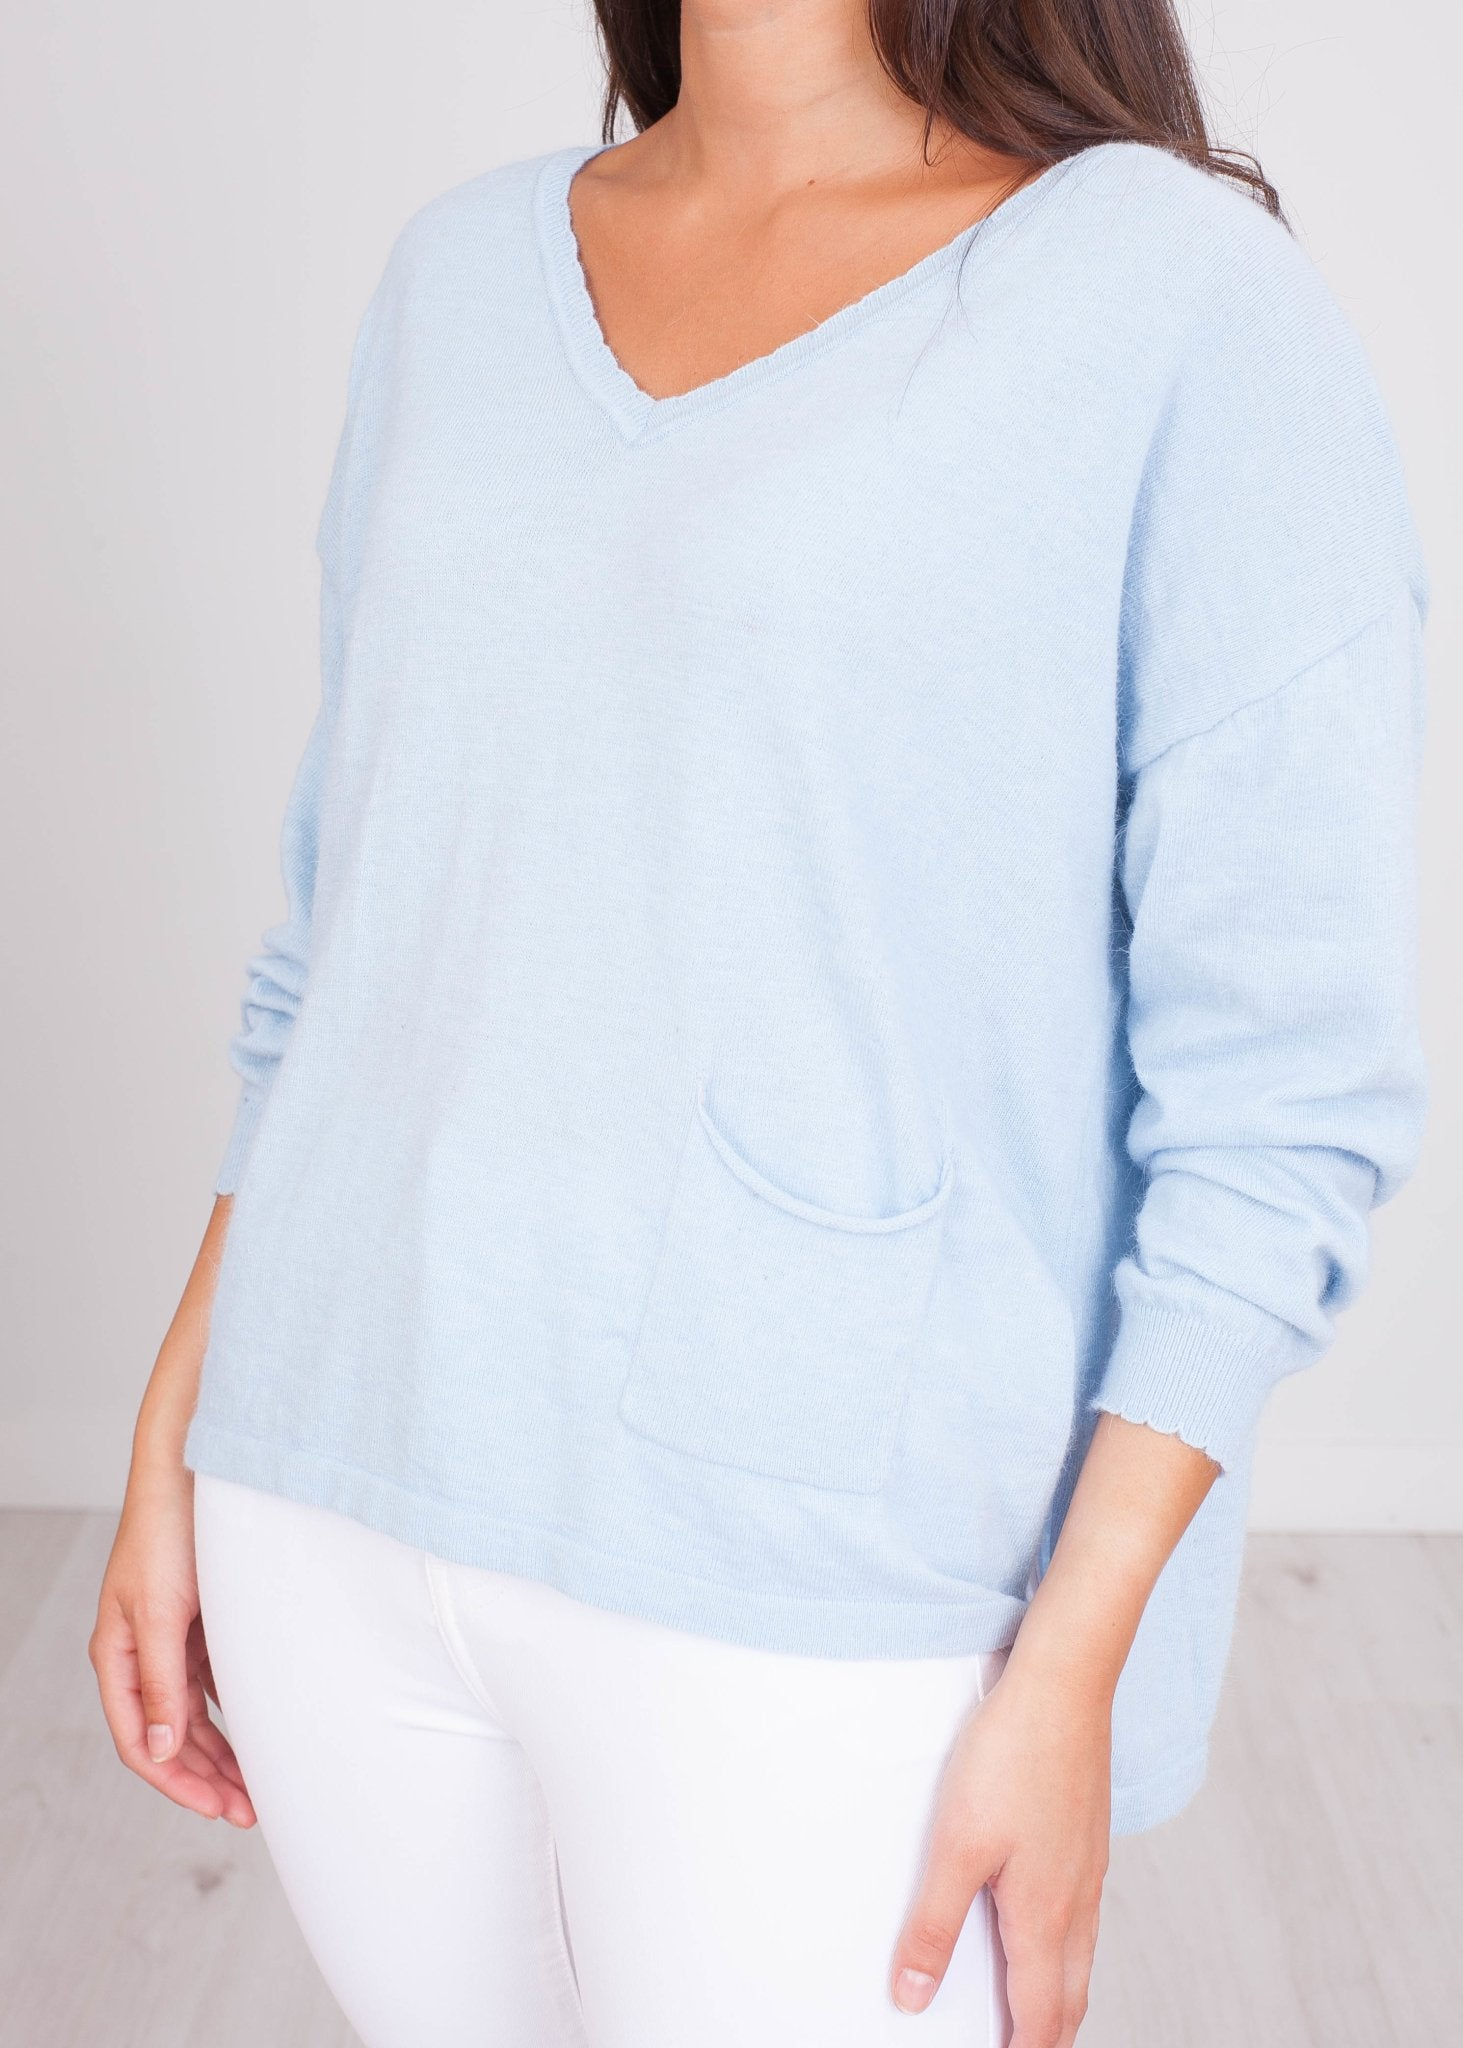 Cherie Blue Knit Top - The Walk in Wardrobe